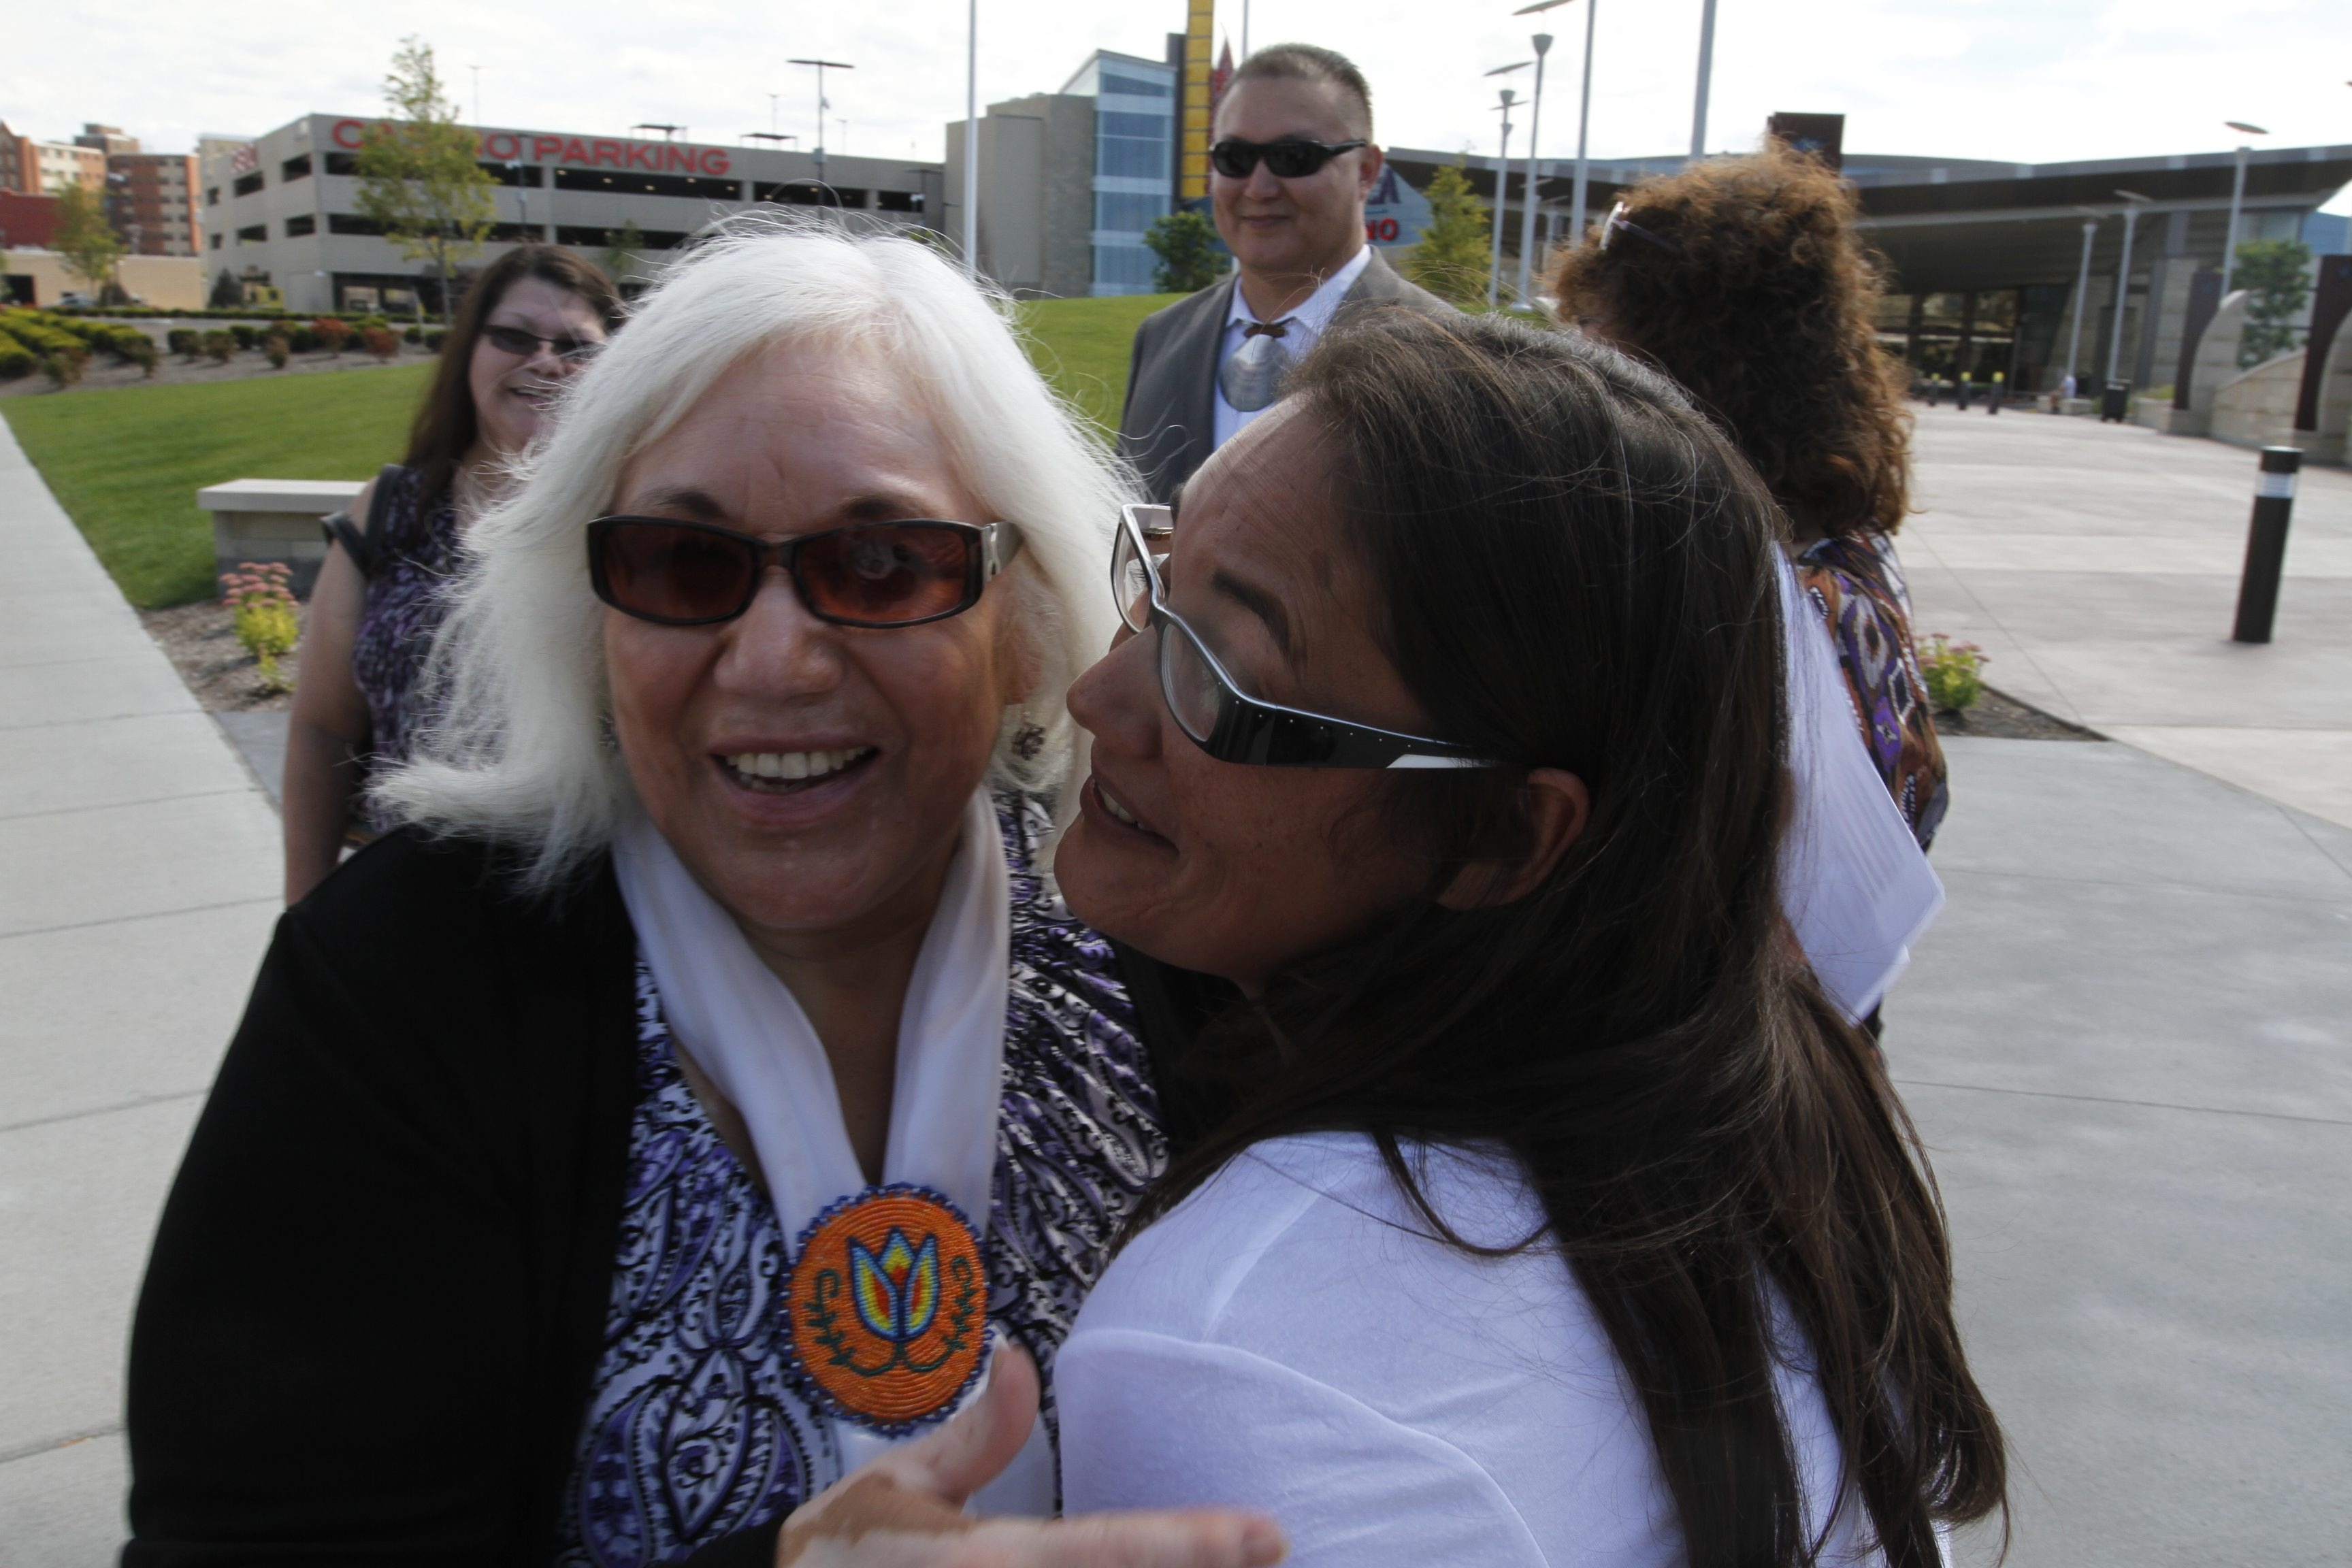 Darlene Miller, left, receives a hug from her daughter Luane Miller outside Seneca Buffalo Creek Casino after announcing her candidacy to become the first female president of the Seneca Nation.